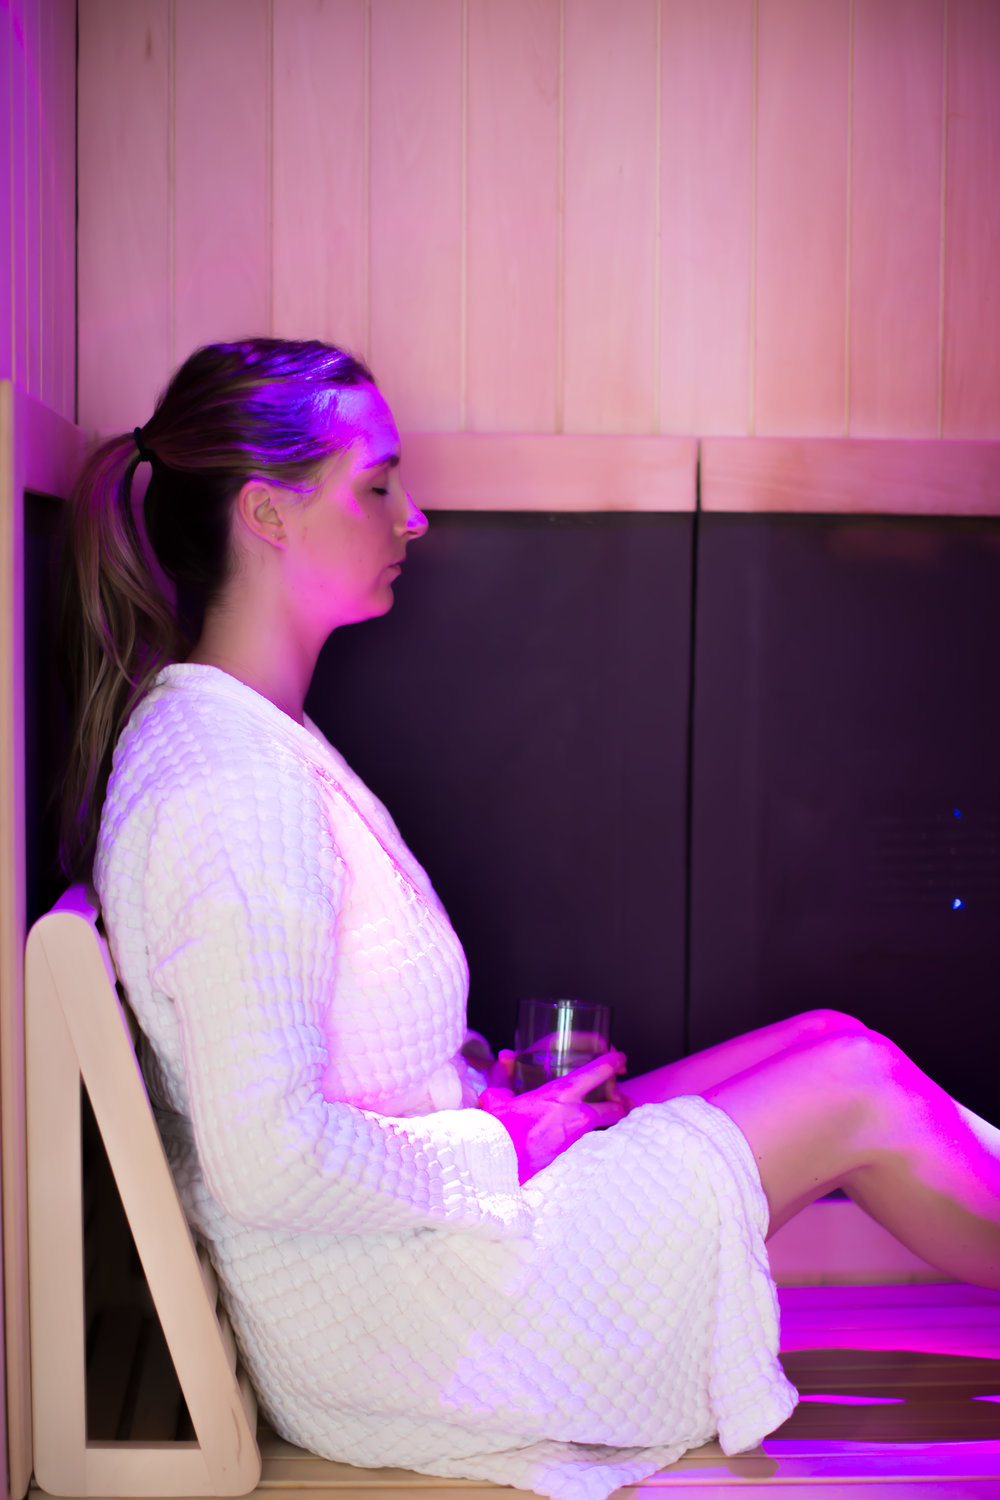 Our saunas have chromotherapy - a way you can connect with the chakras. Pink is not associated with a specific chakra, but is usually correlated to the Heart Chakra.